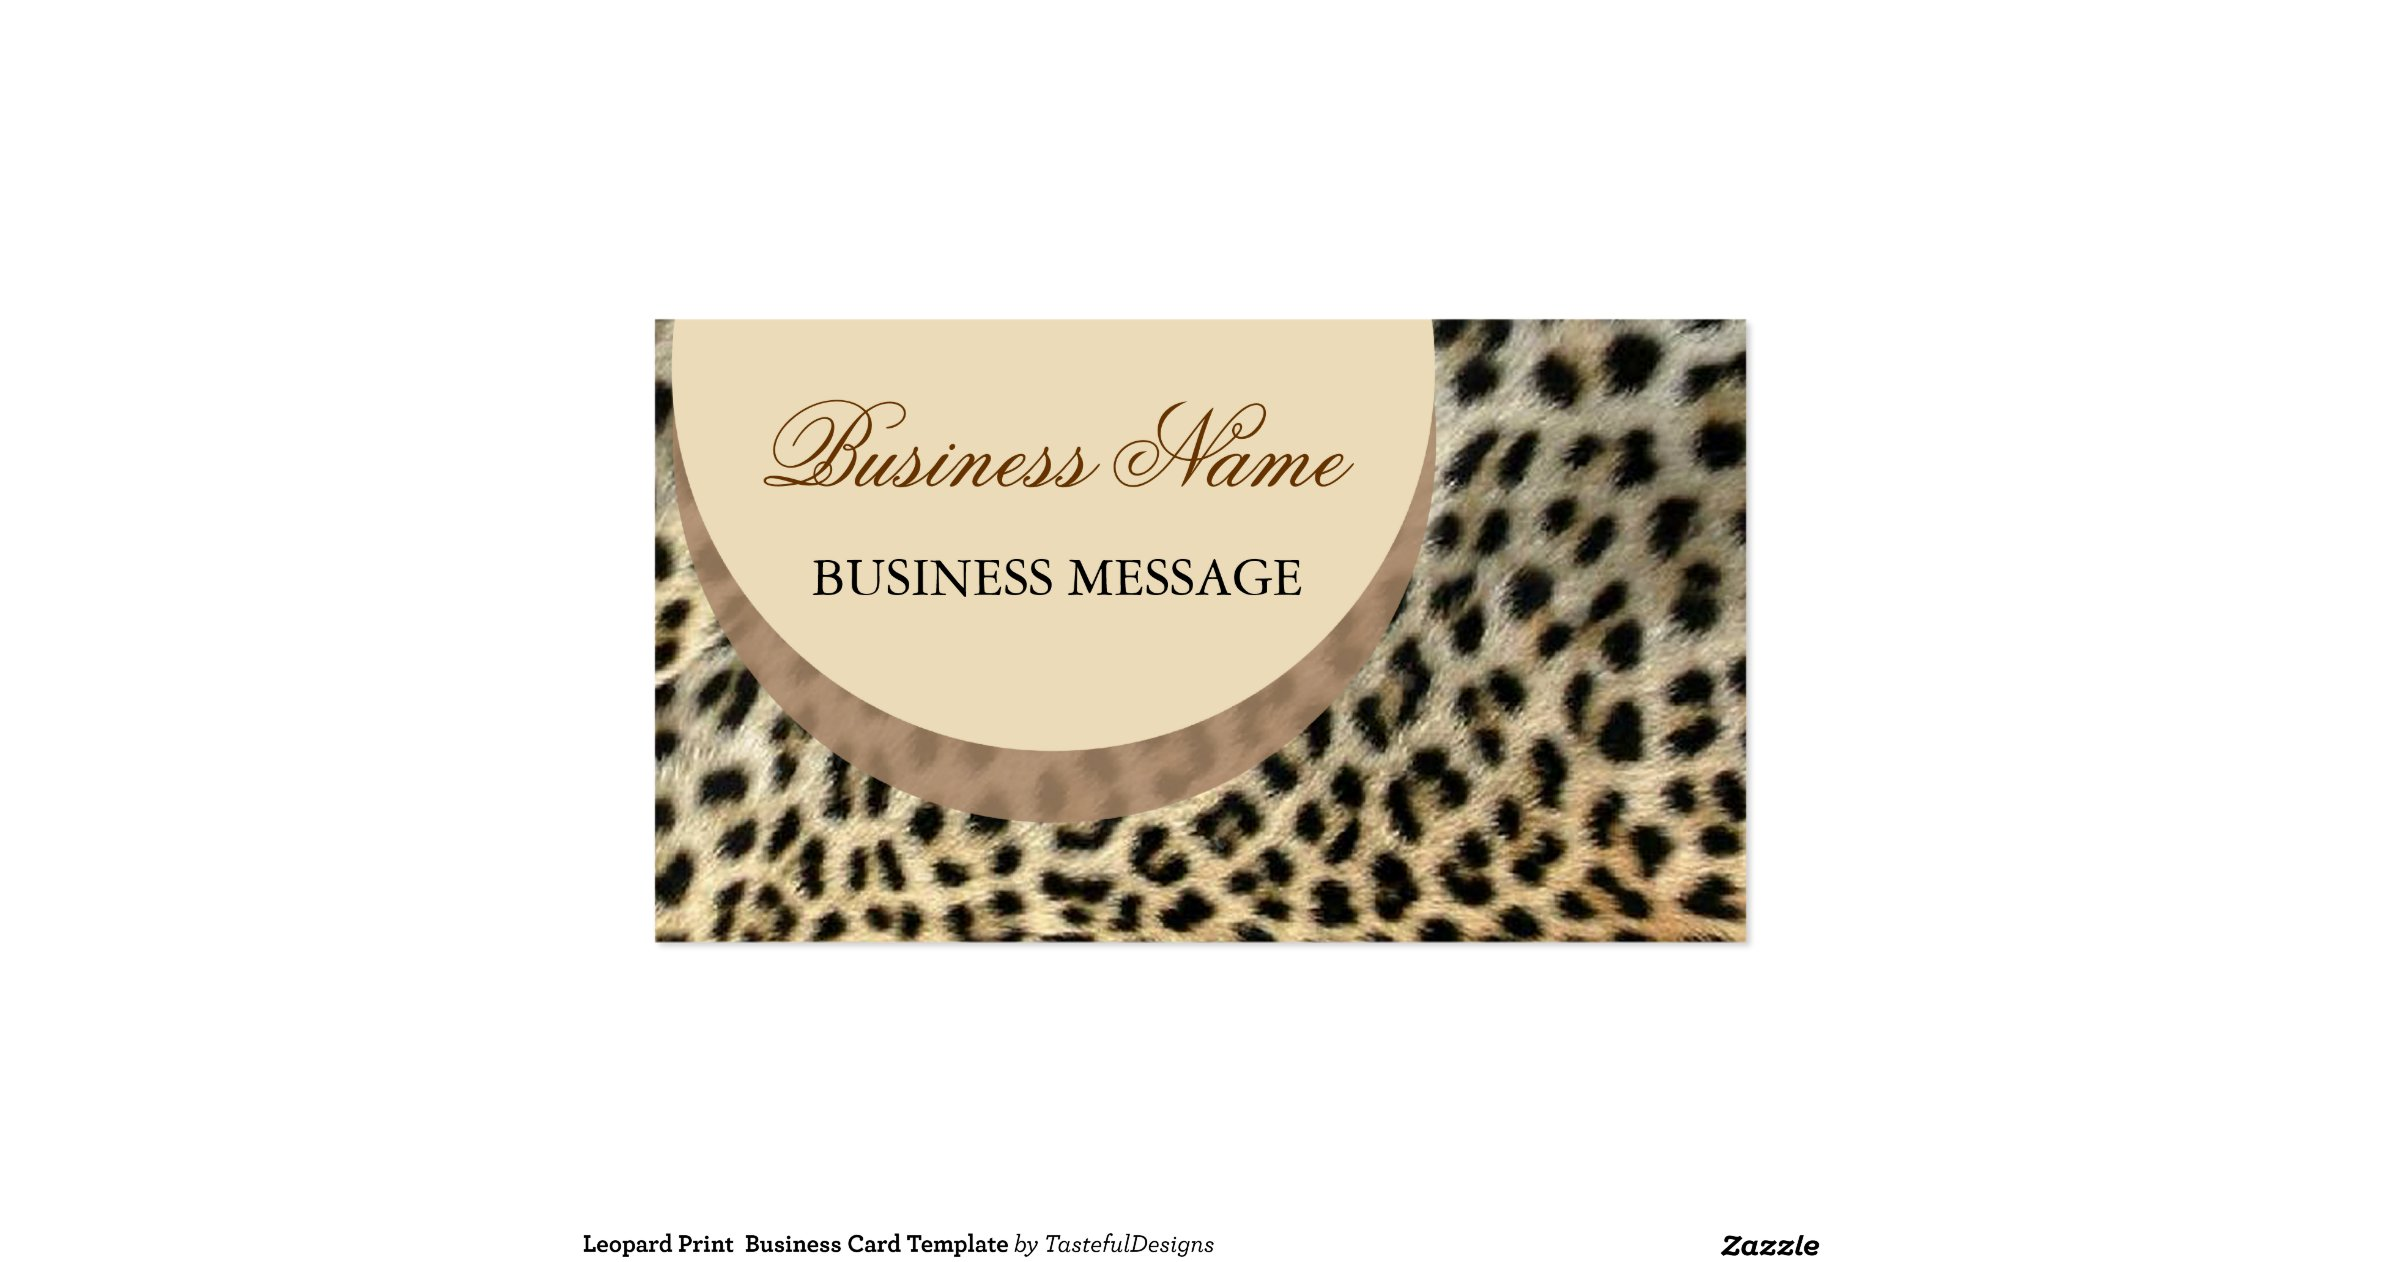 Leopard print business card templates leopard print business card template zazzle leopardprintbusinesscardtemplate reheart Image collections